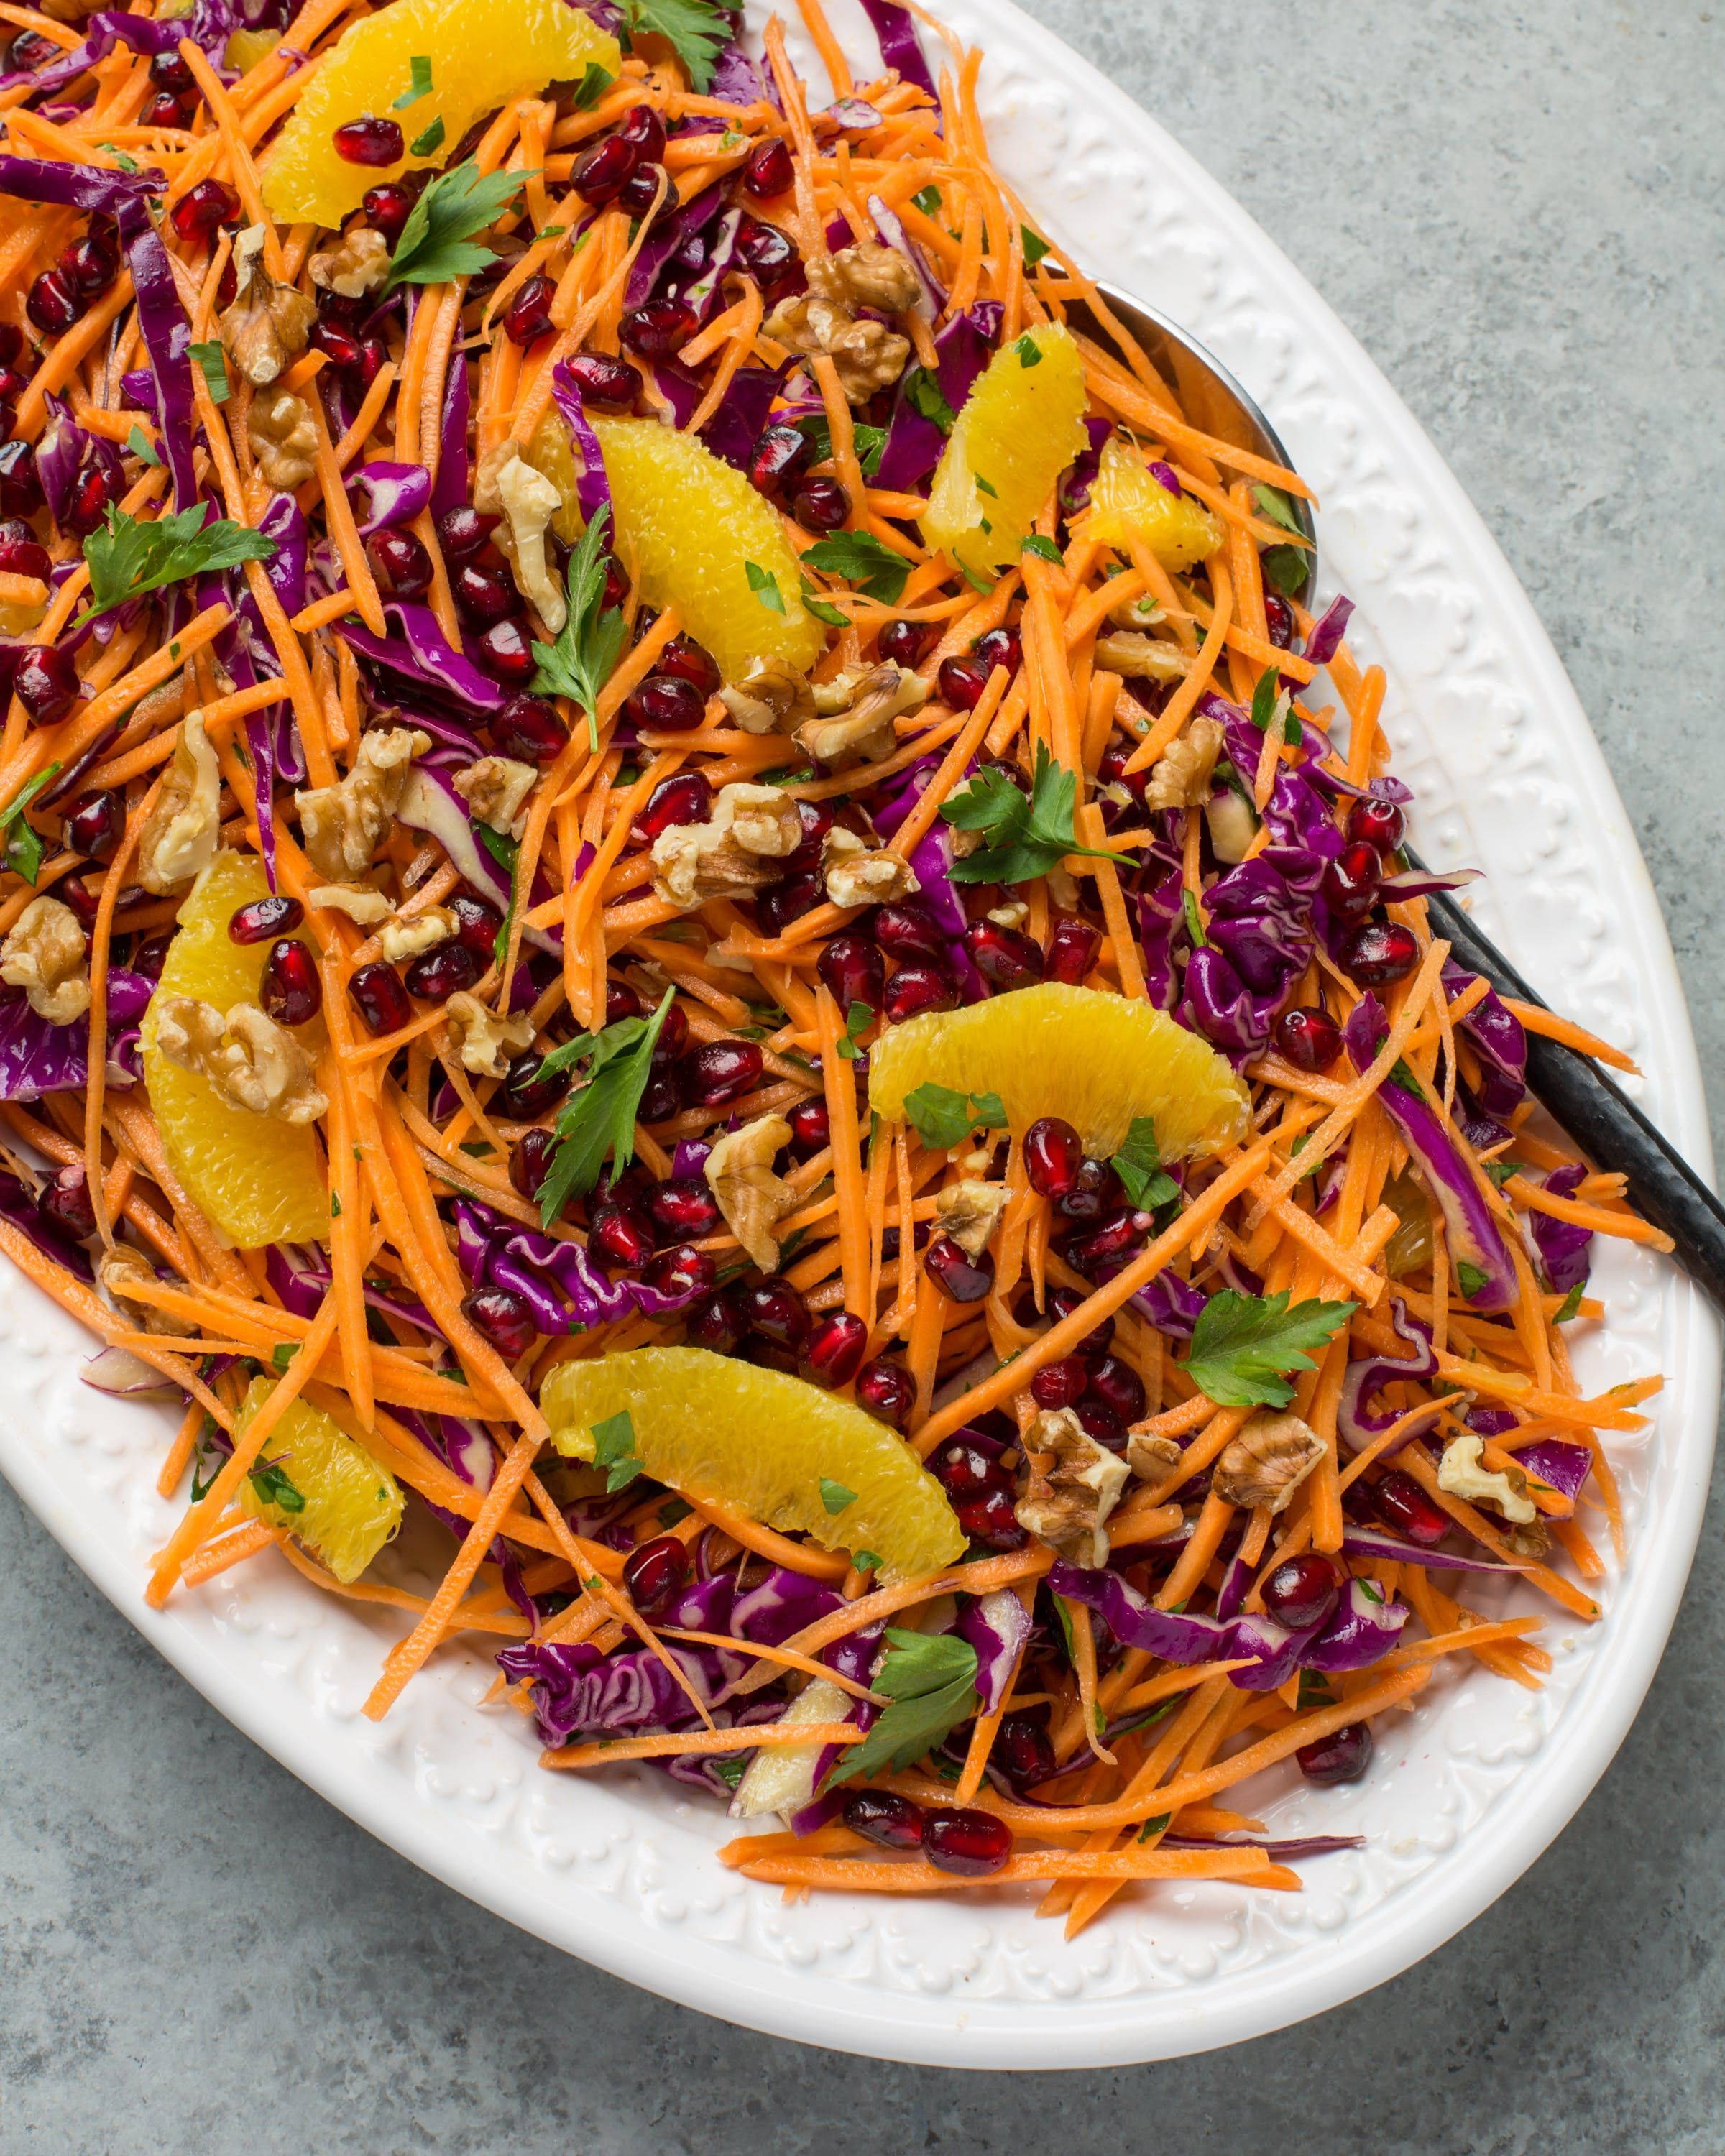 Recipe: Shredded Cabbage and Sweet Potato Slaw — Recipes from The Kitchn